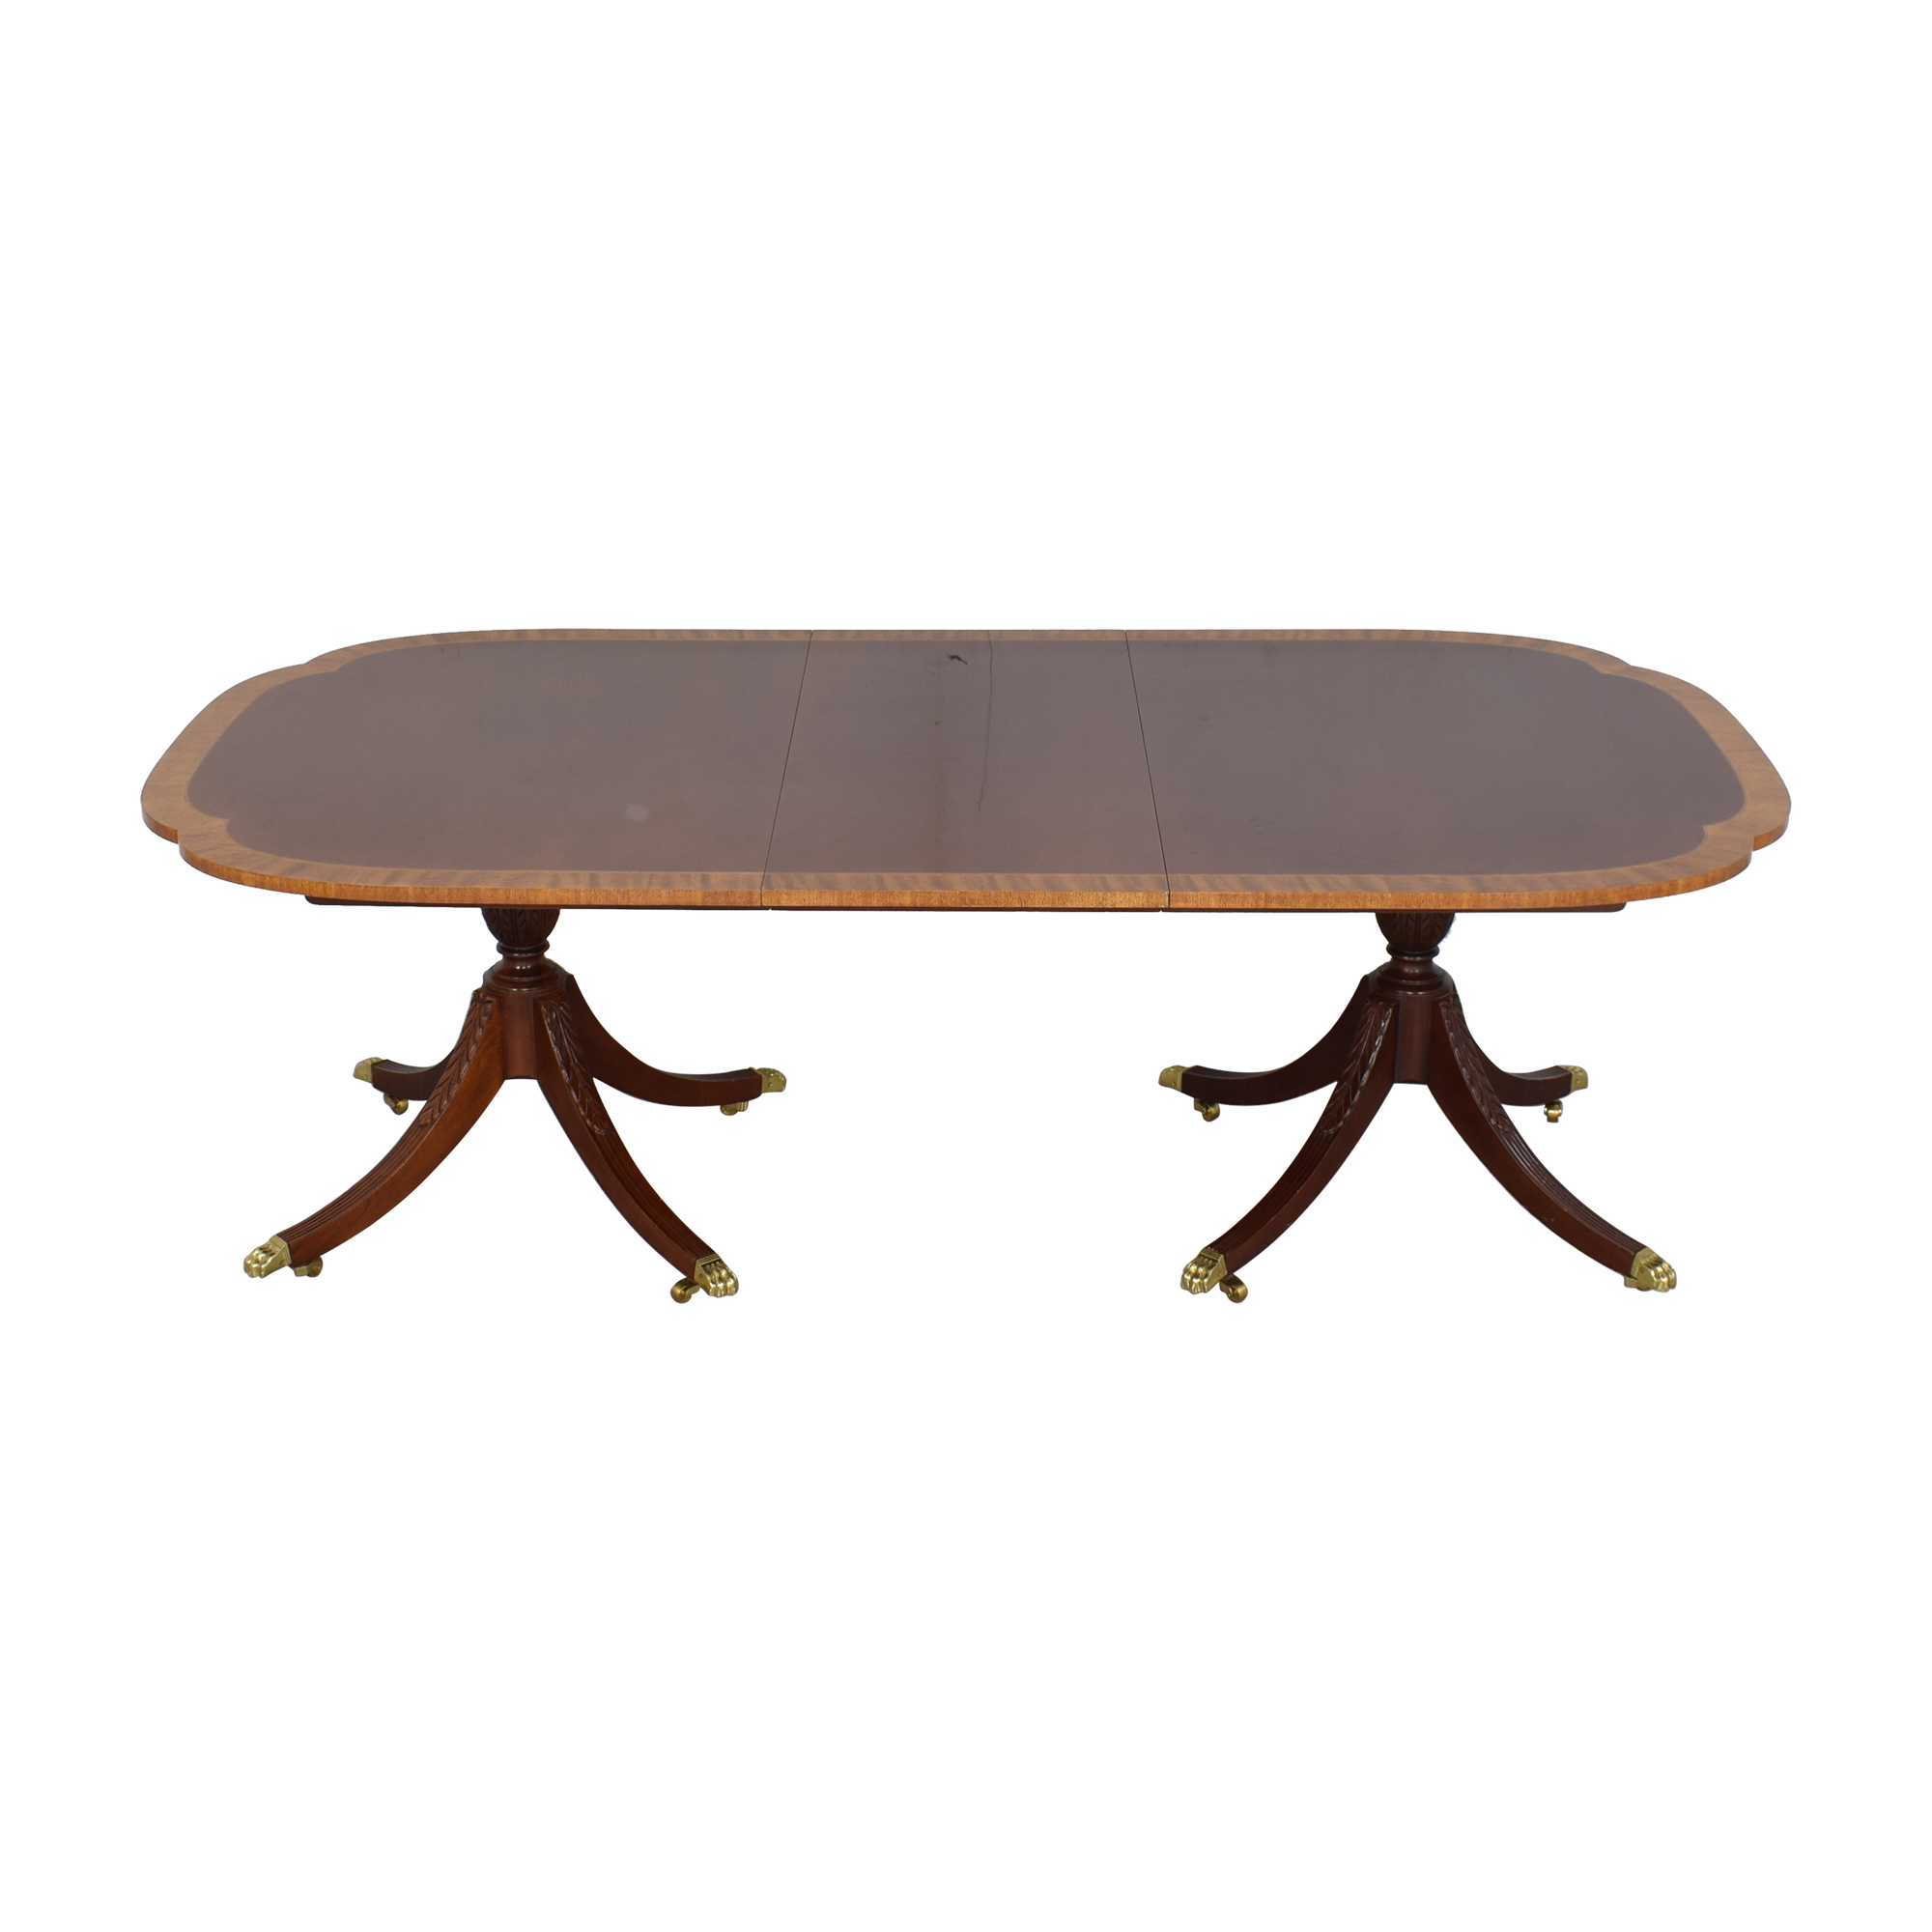 Councill Councill Craftsman Banded Top Dining Table for sale